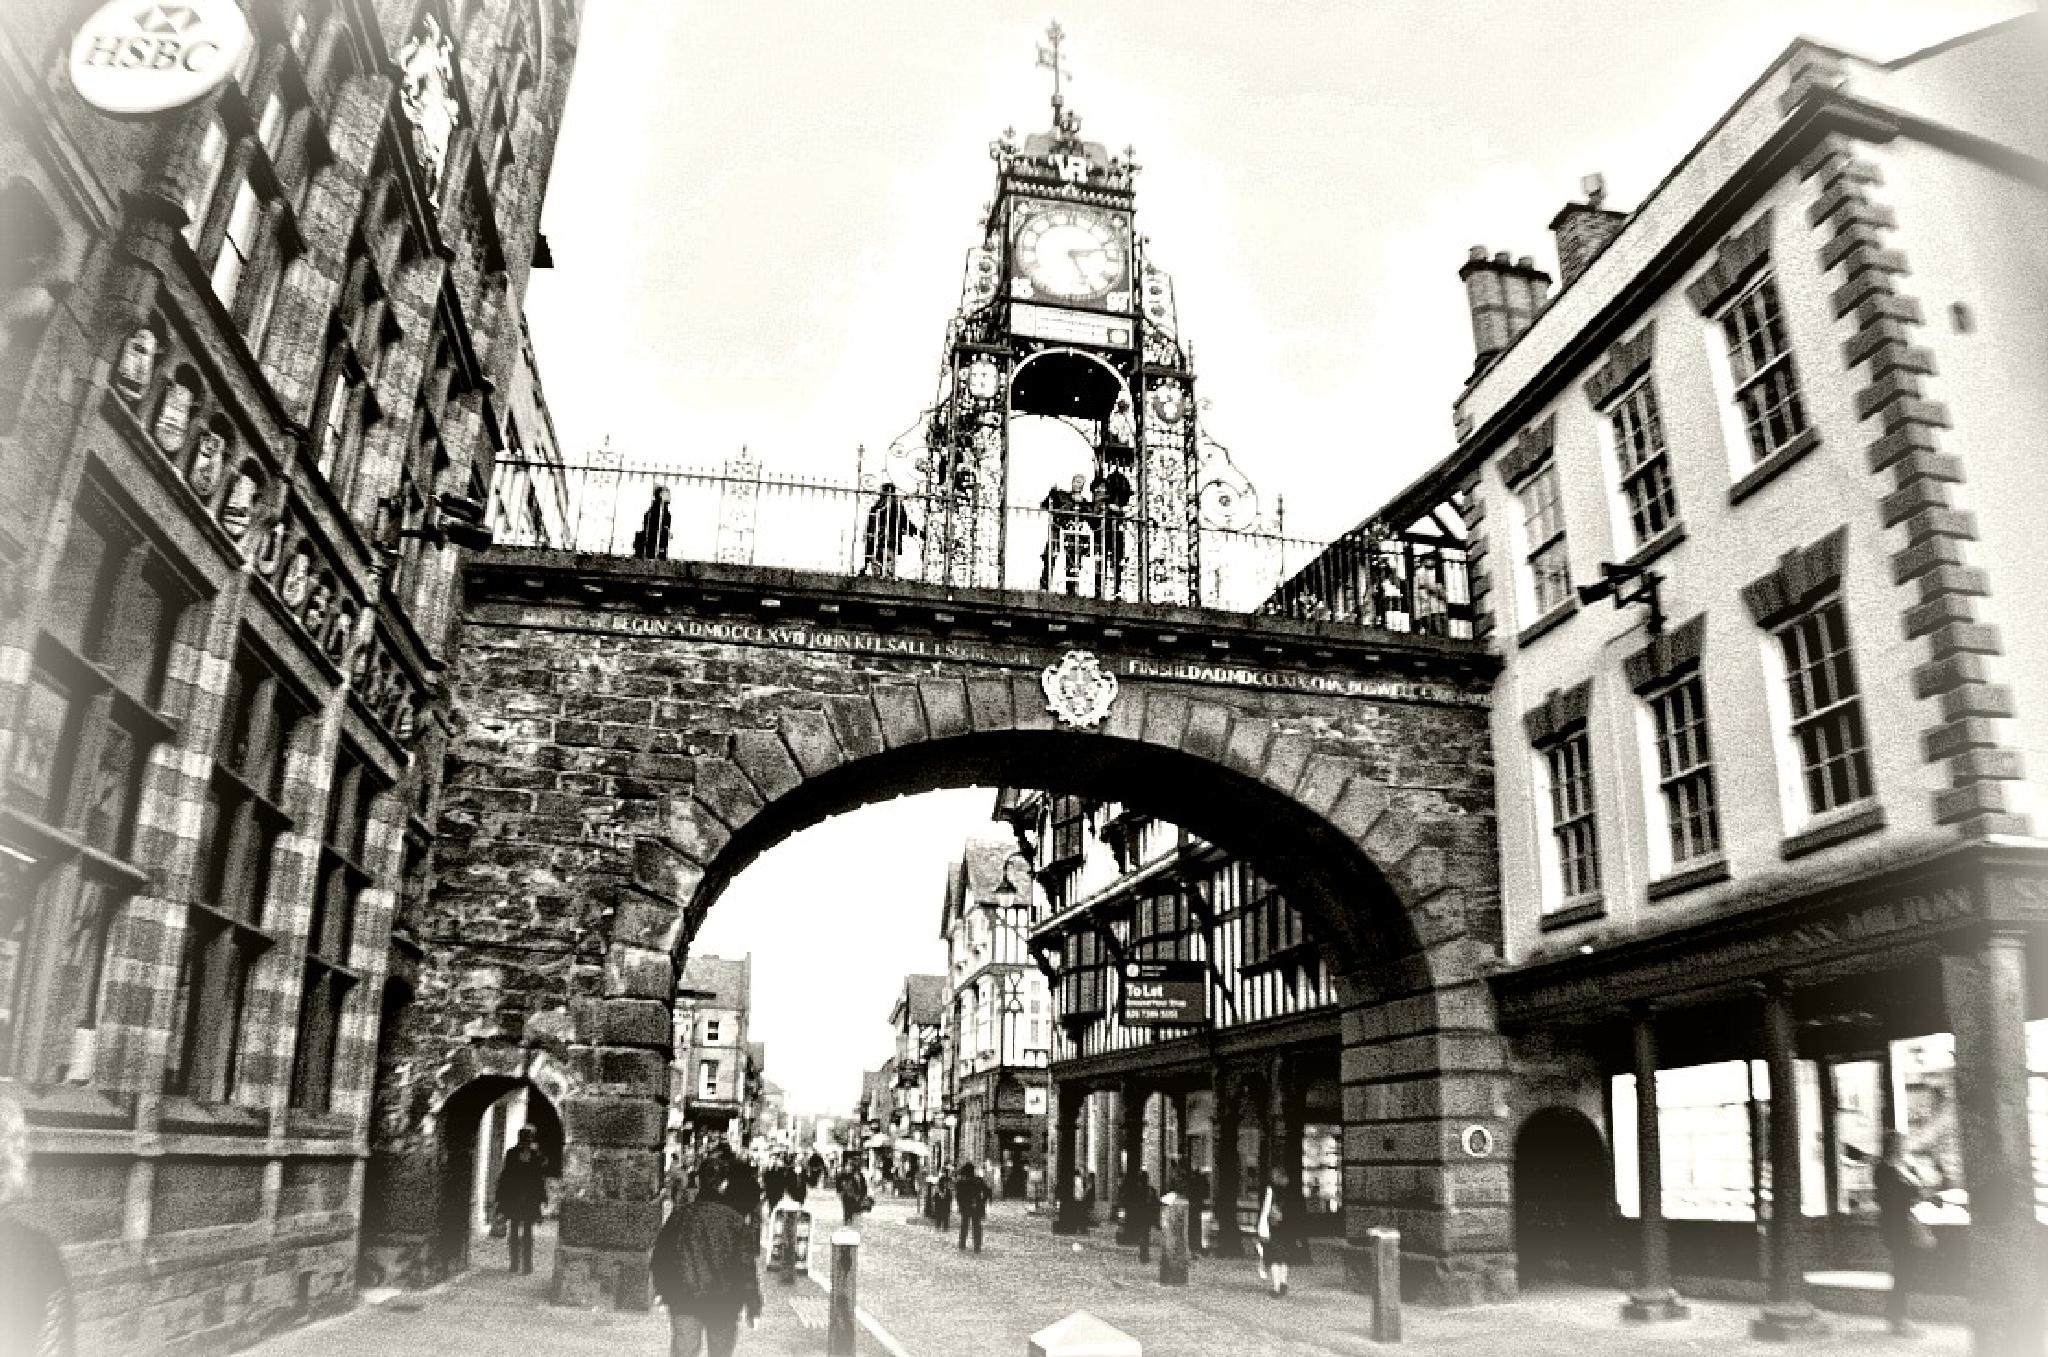 EASTGATE  by keve E